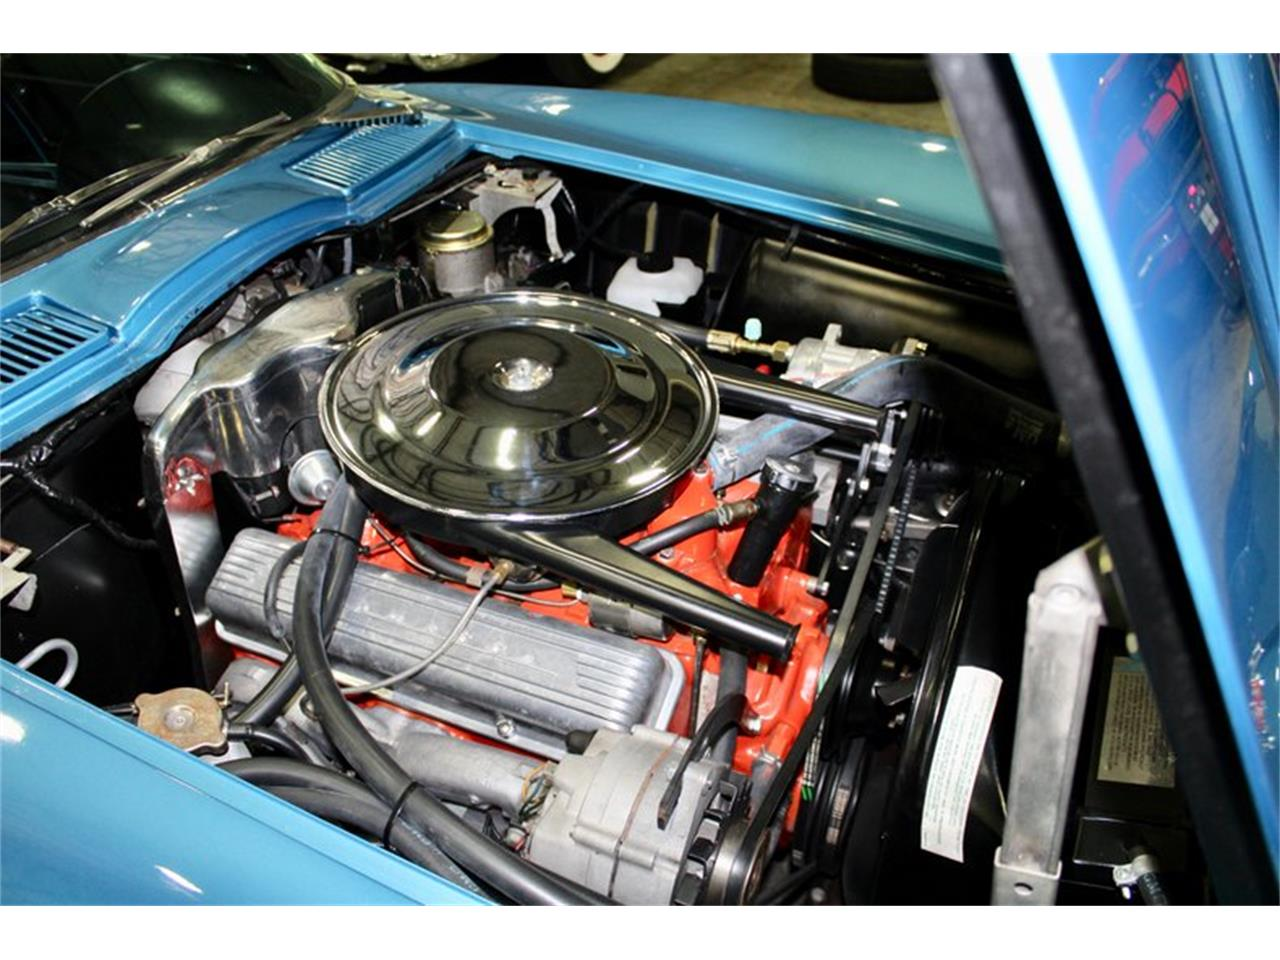 Large Picture of '65 Chevrolet Corvette located in Florida - $69,500.00 Offered by Classic Cars of Sarasota - QSRR